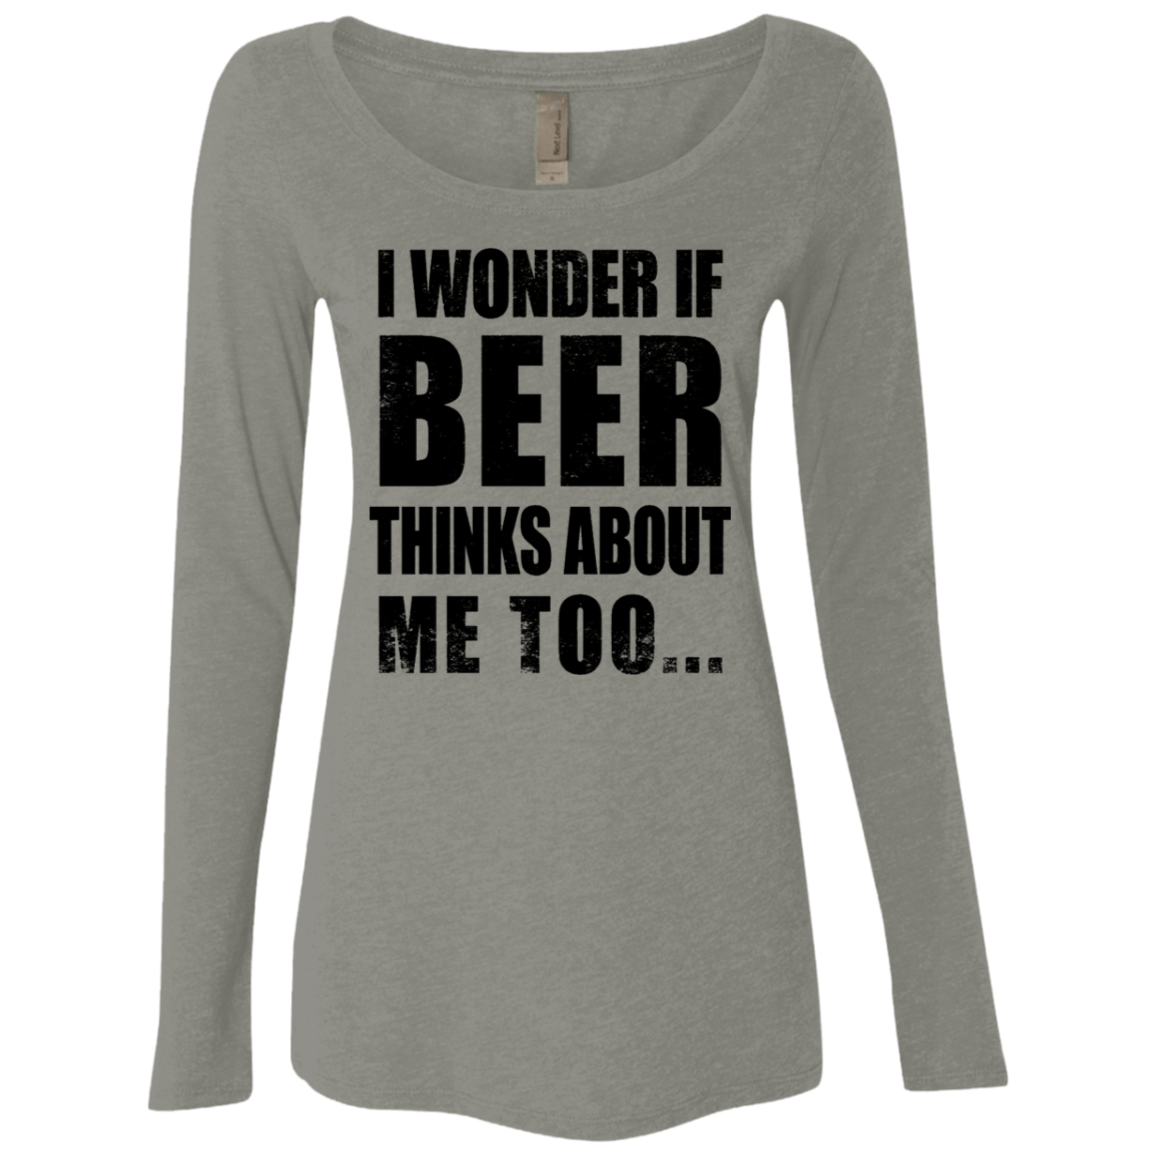 I Wonder if Beer Thinks About Me Too Women's Long Sleeve Tee